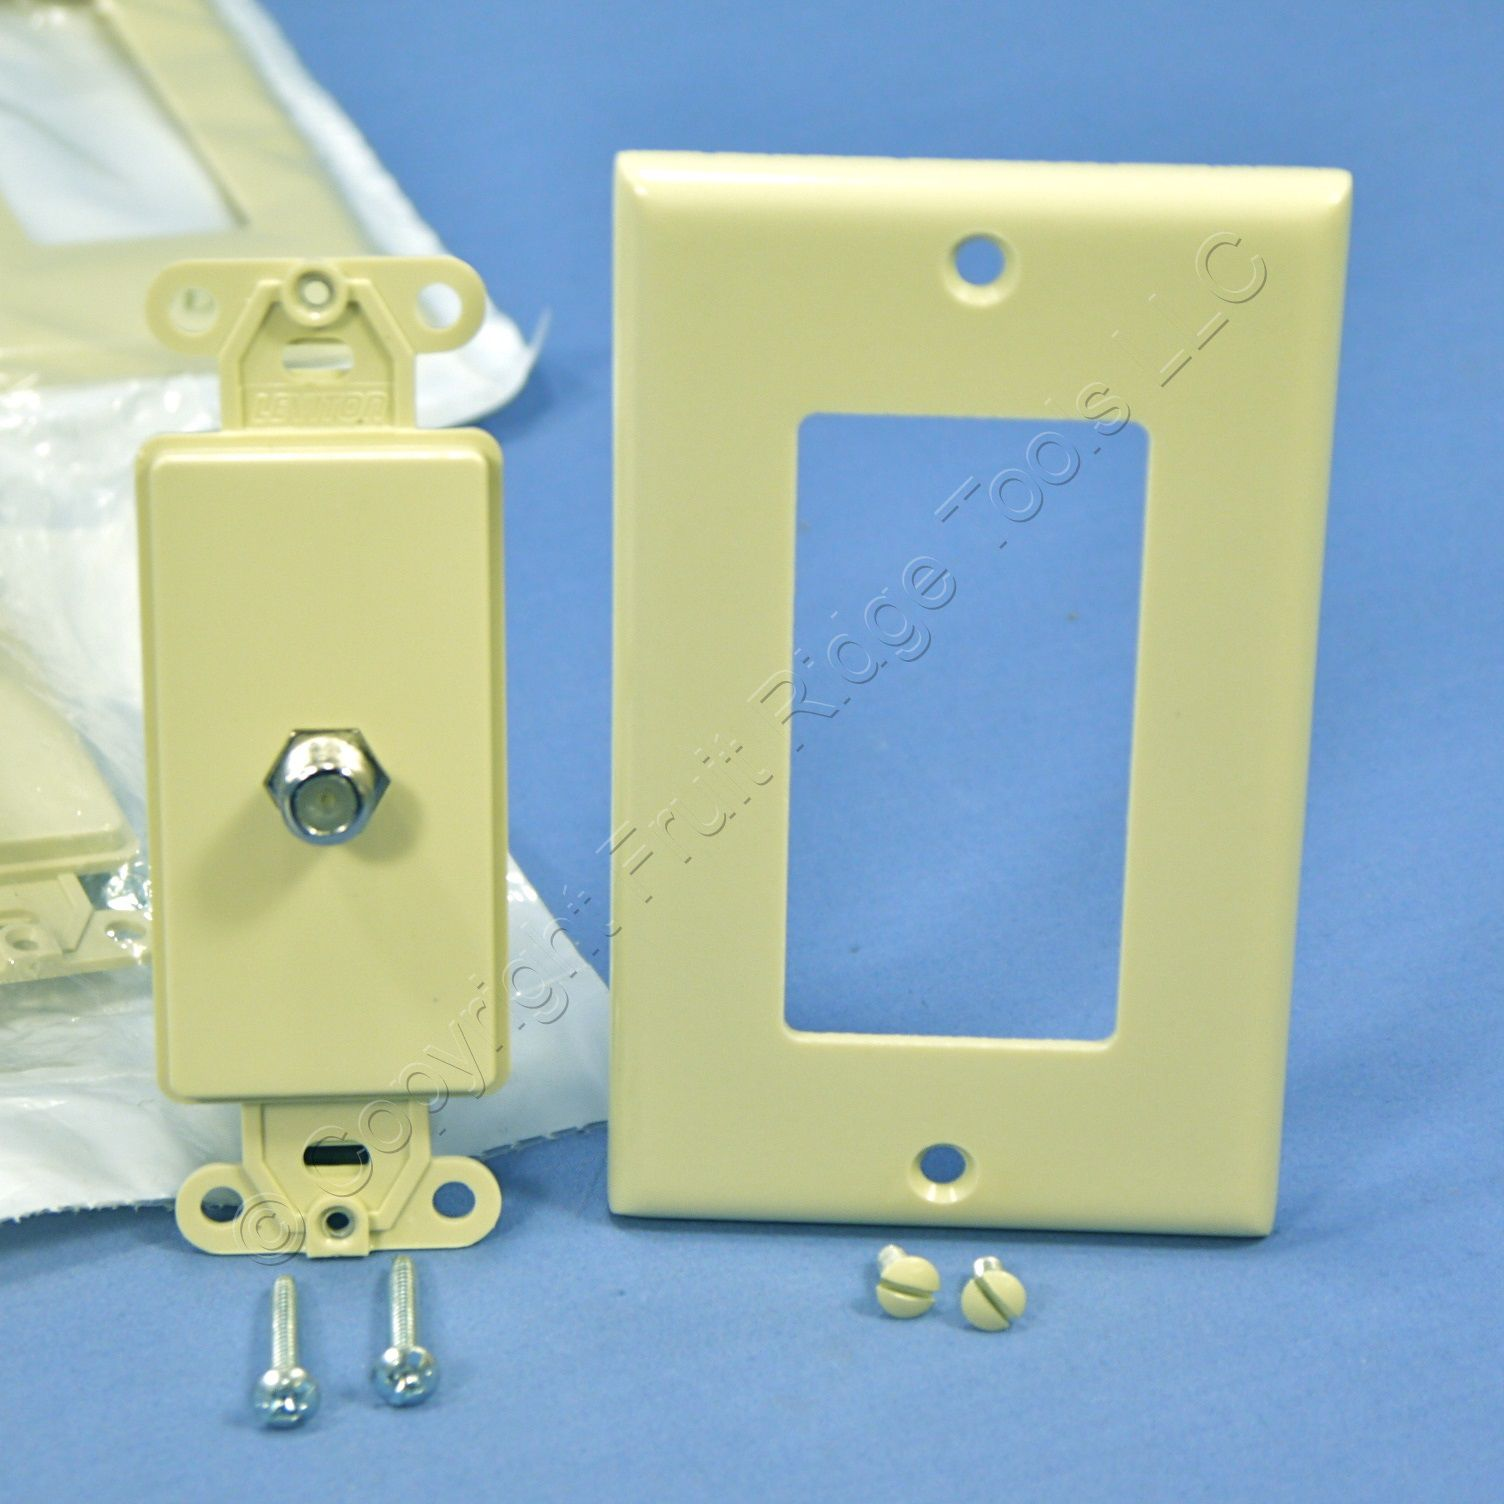 🏠 🔌 Shop 10 Ivory Leviton Decora Coaxial Cable CATV Wall Plate ...